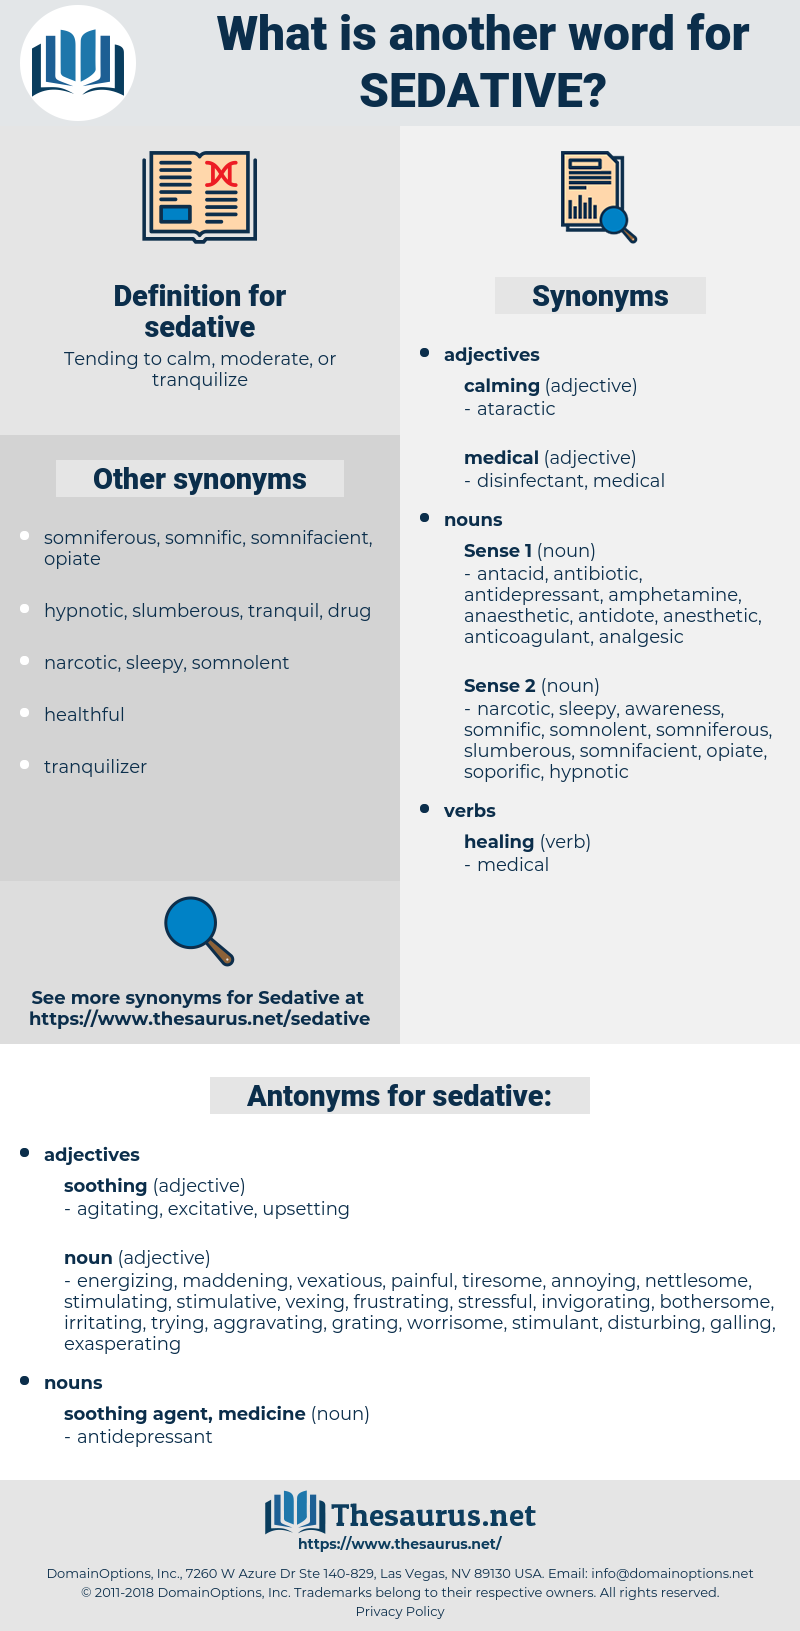 sedative, synonym sedative, another word for sedative, words like sedative, thesaurus sedative